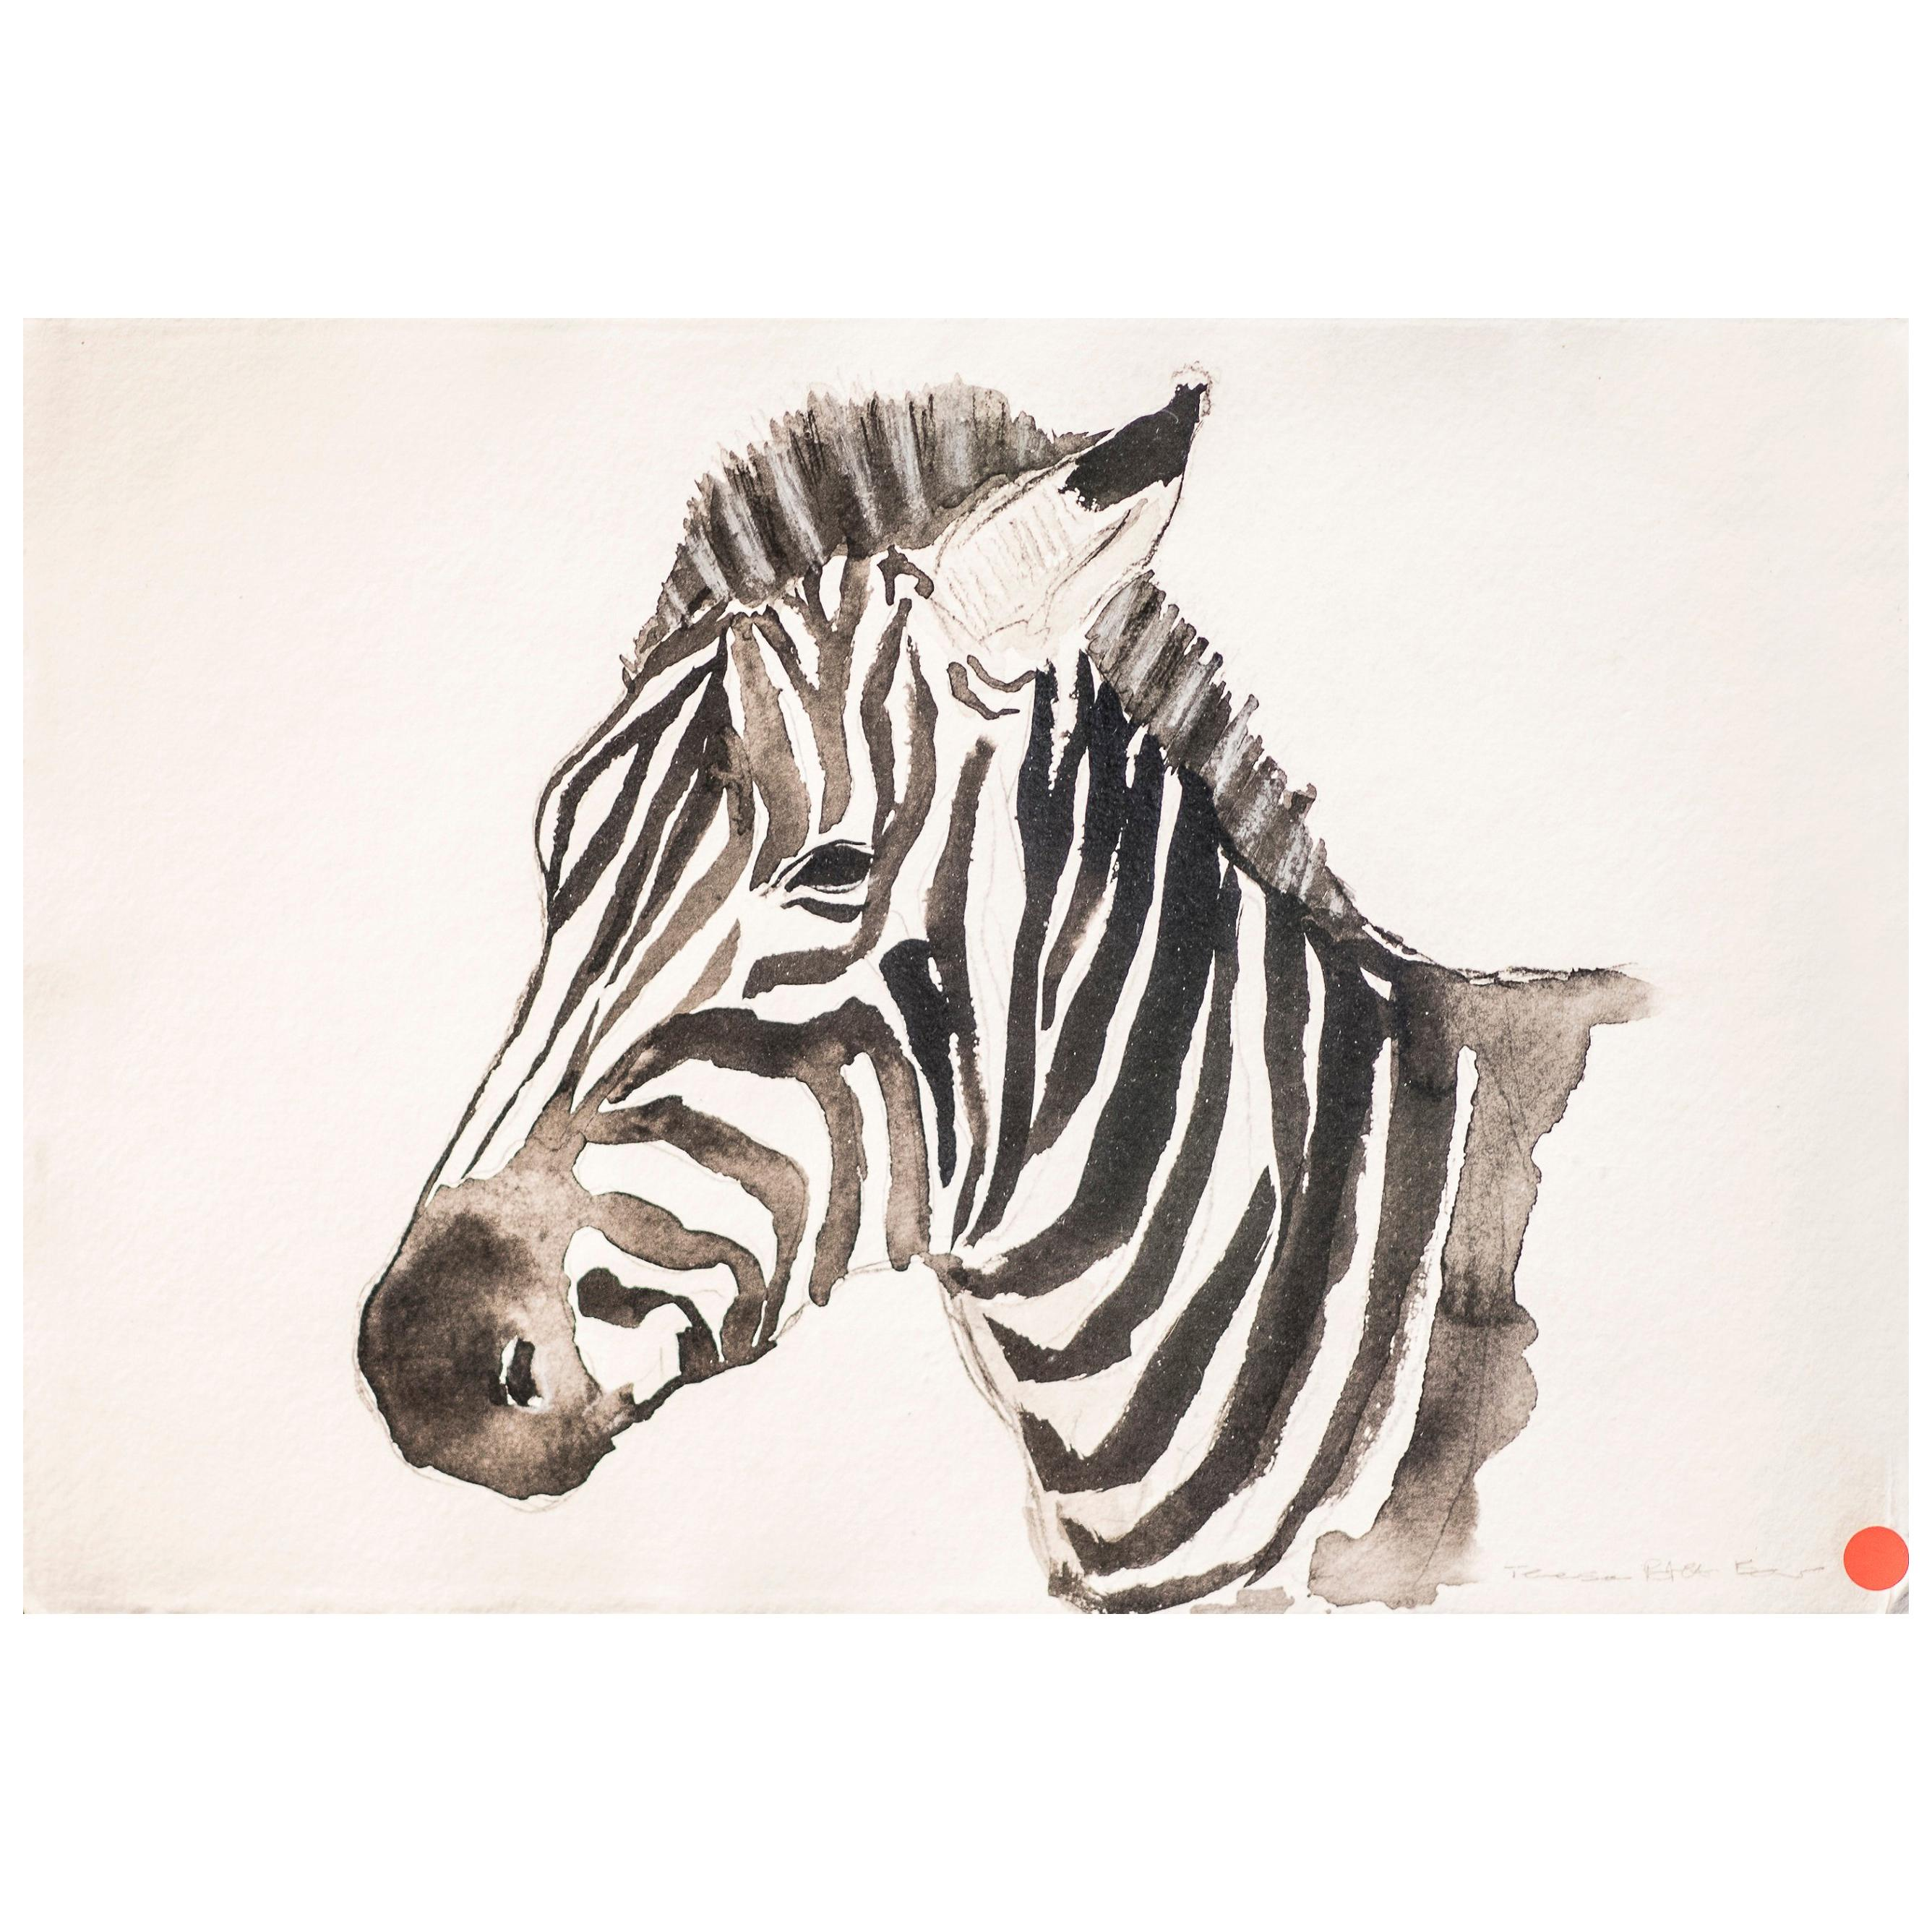 21st Century Black and White Watercolor Zebra Portrait, Chinese Author, Signed